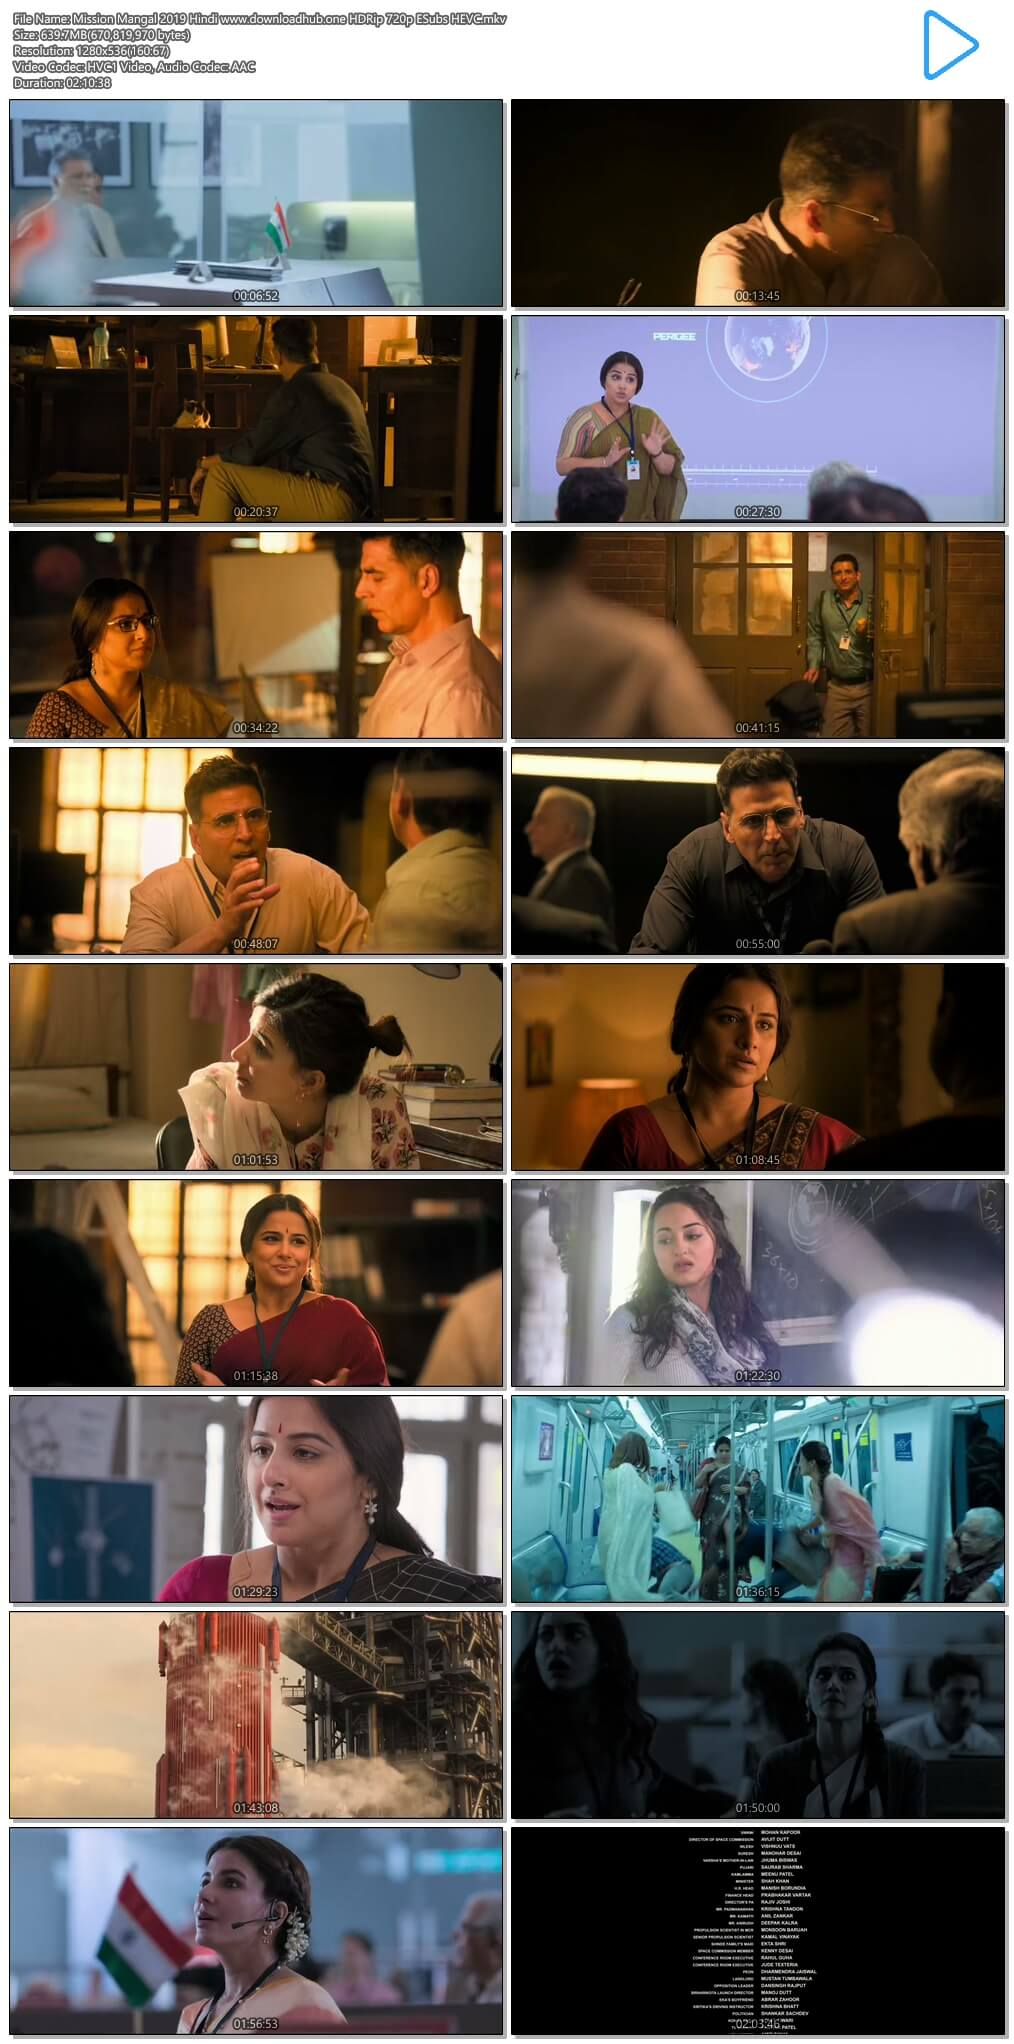 Mission Mangal 2019 Hindi 600MB HDRip 720p ESubs HEVC